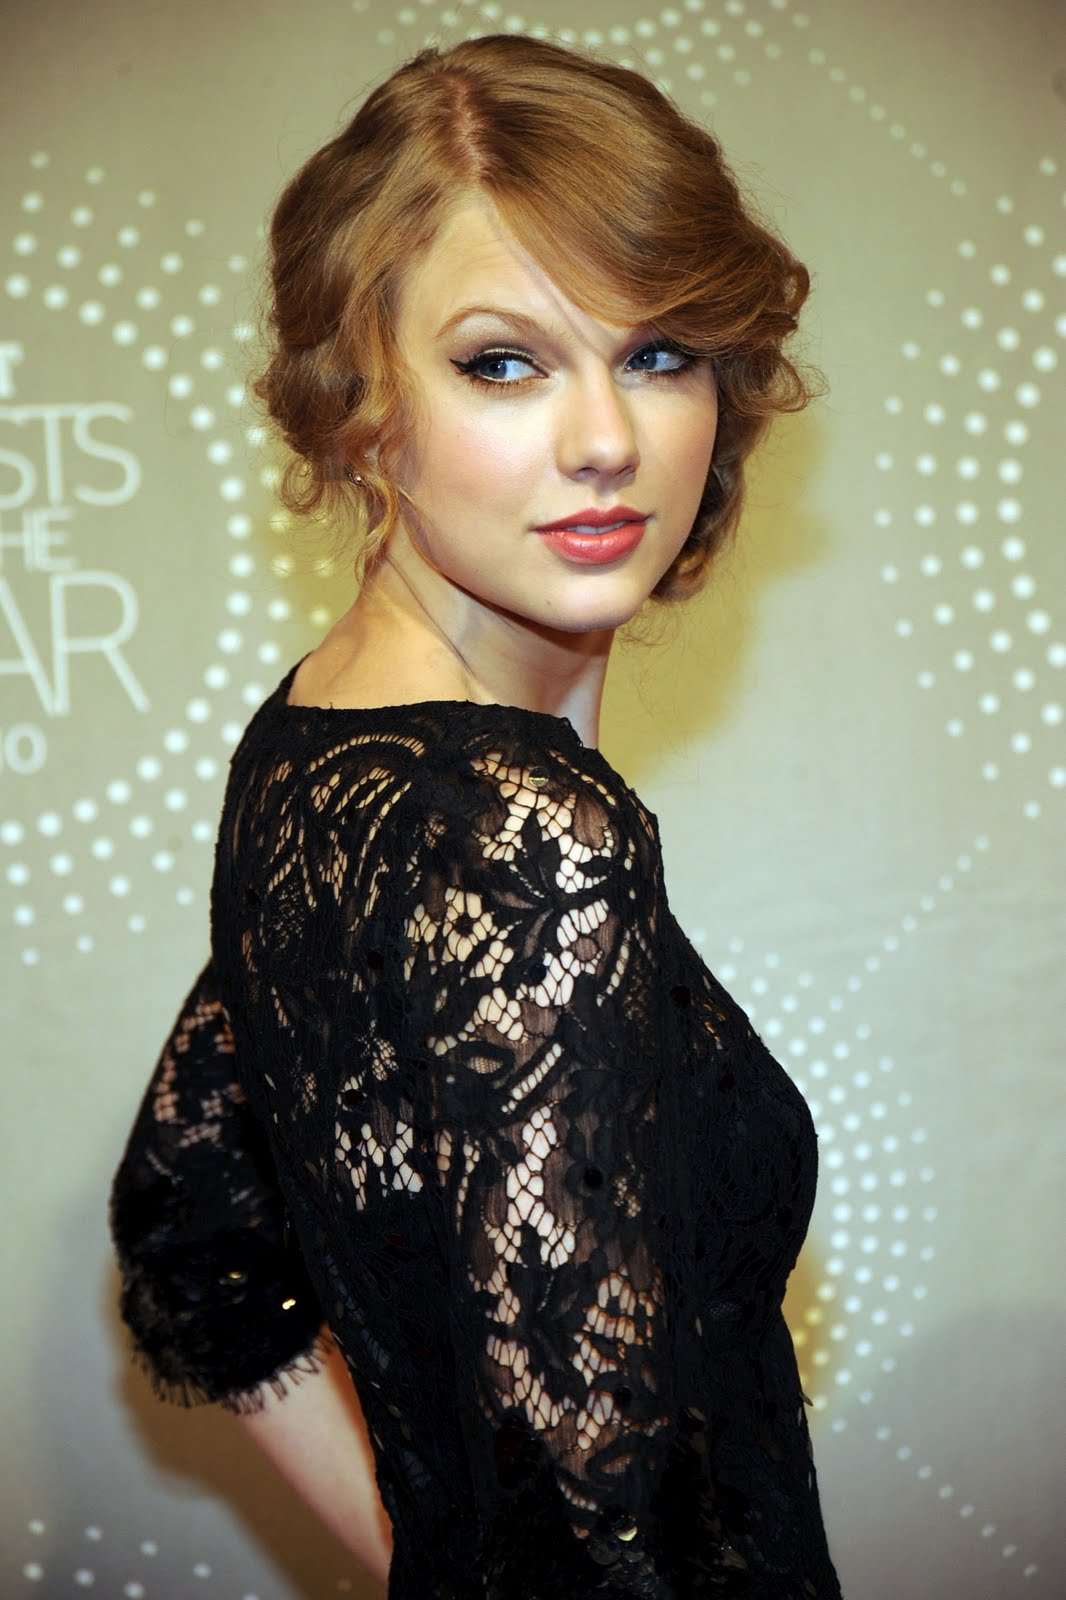 Taylor Swift Inspired Makeup Tutorial: Best Cool Pics: Taylor Swift Artists Of The Year 2010 Awards